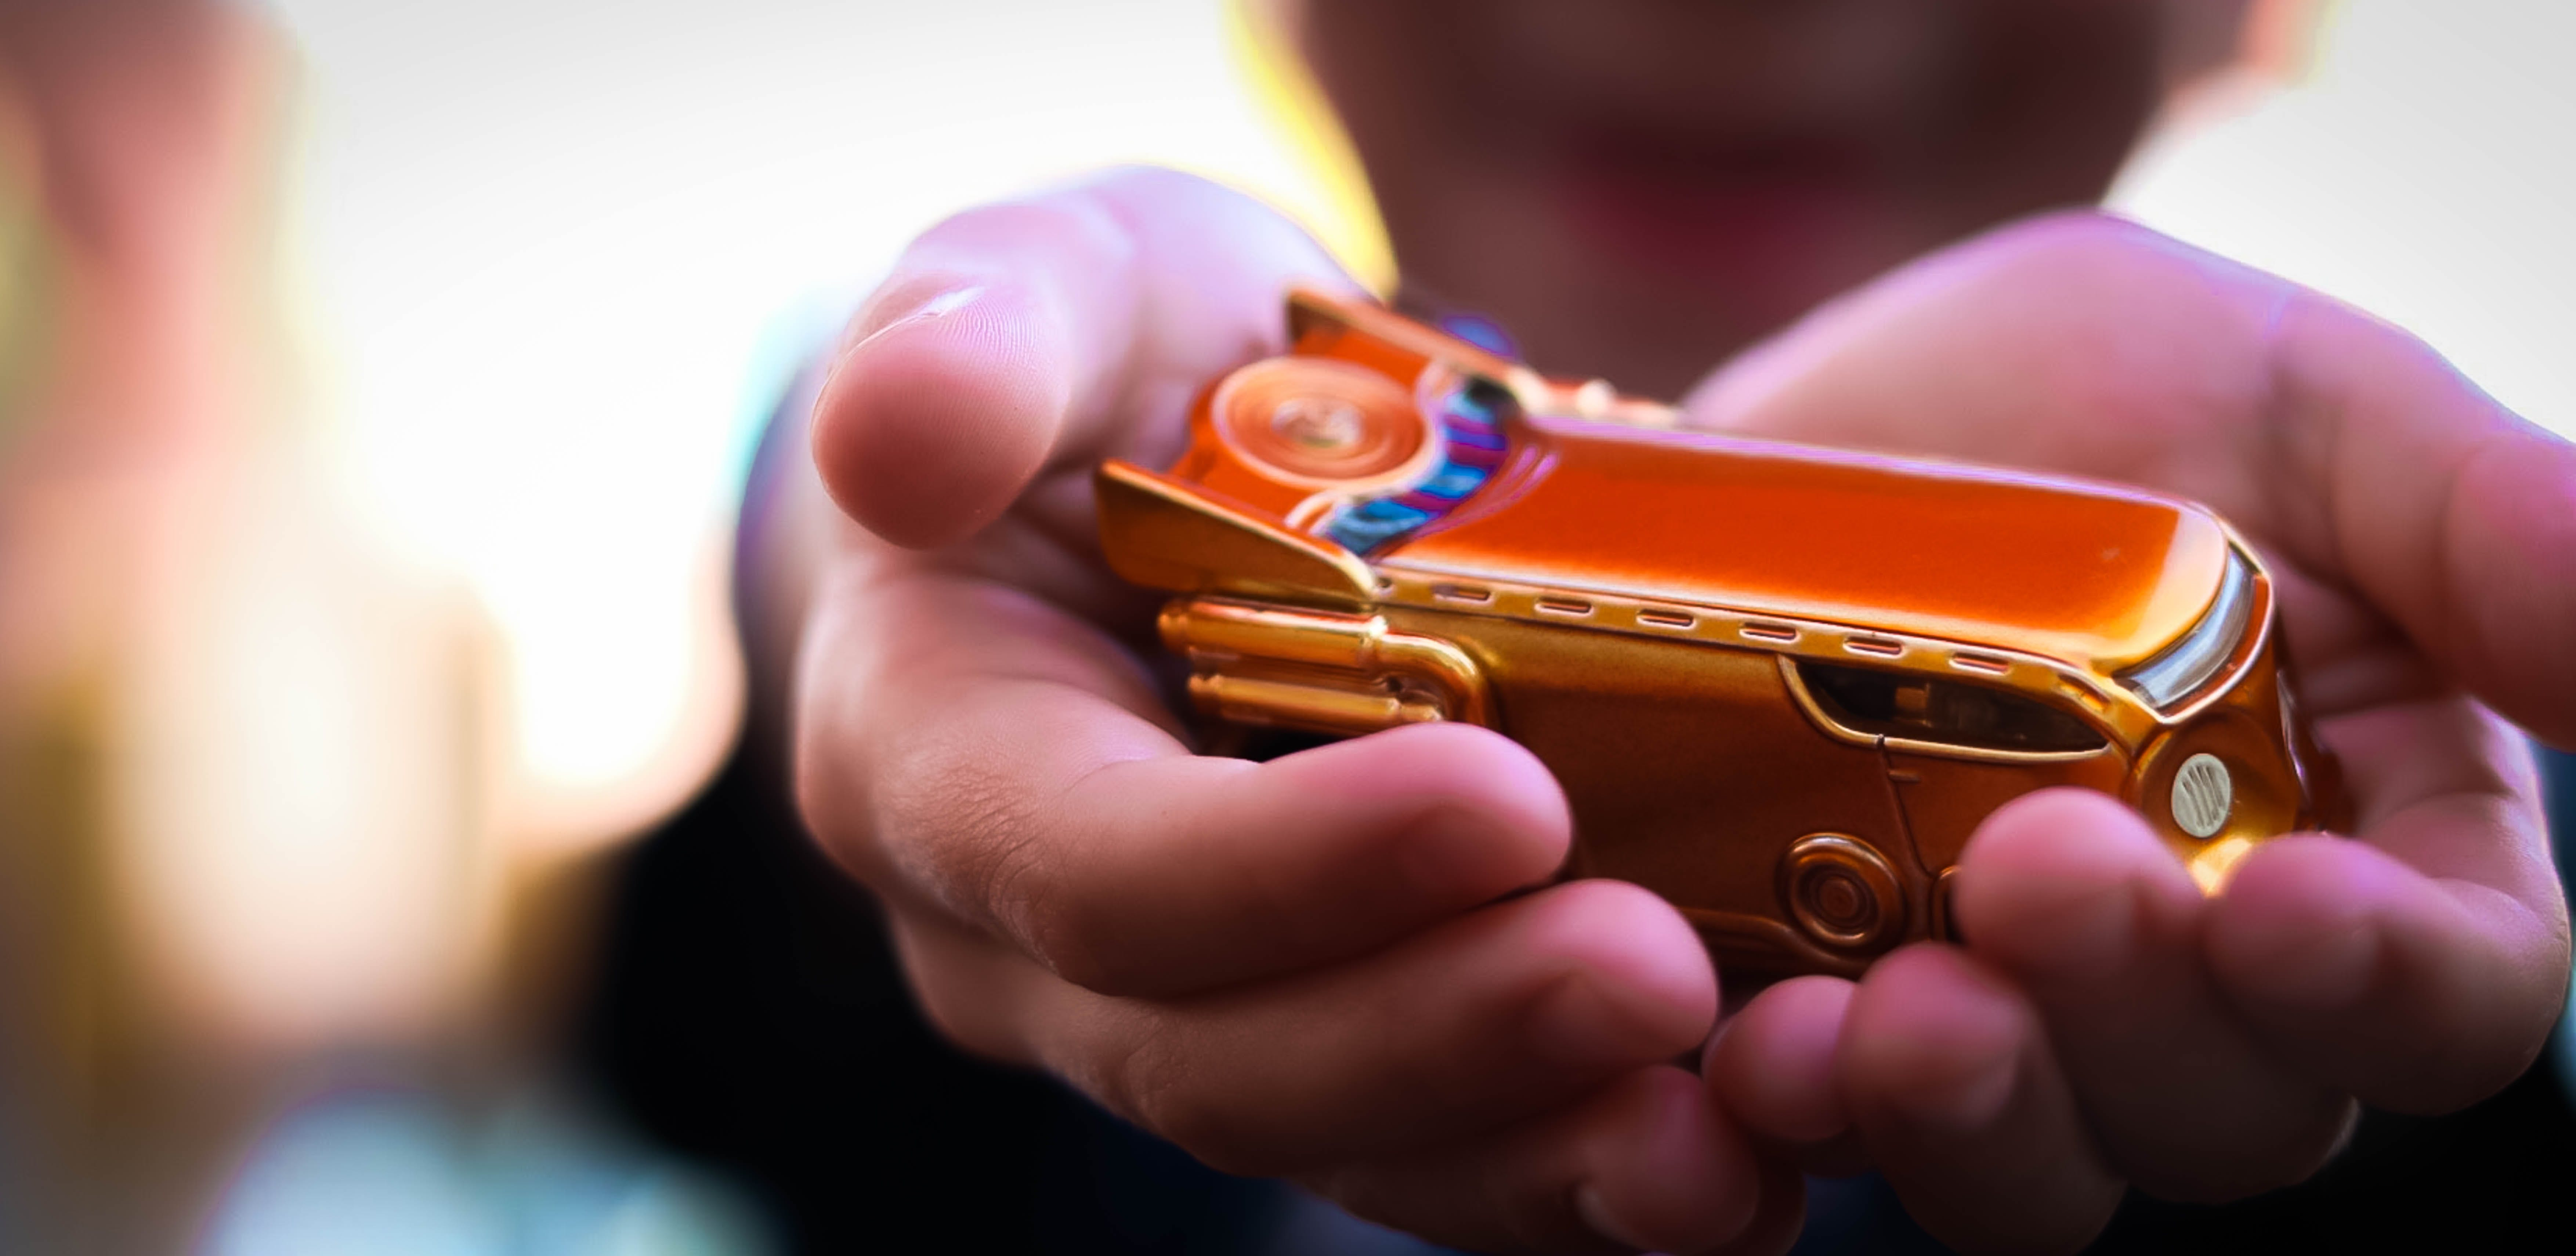 Person Holding Gold Car Toy